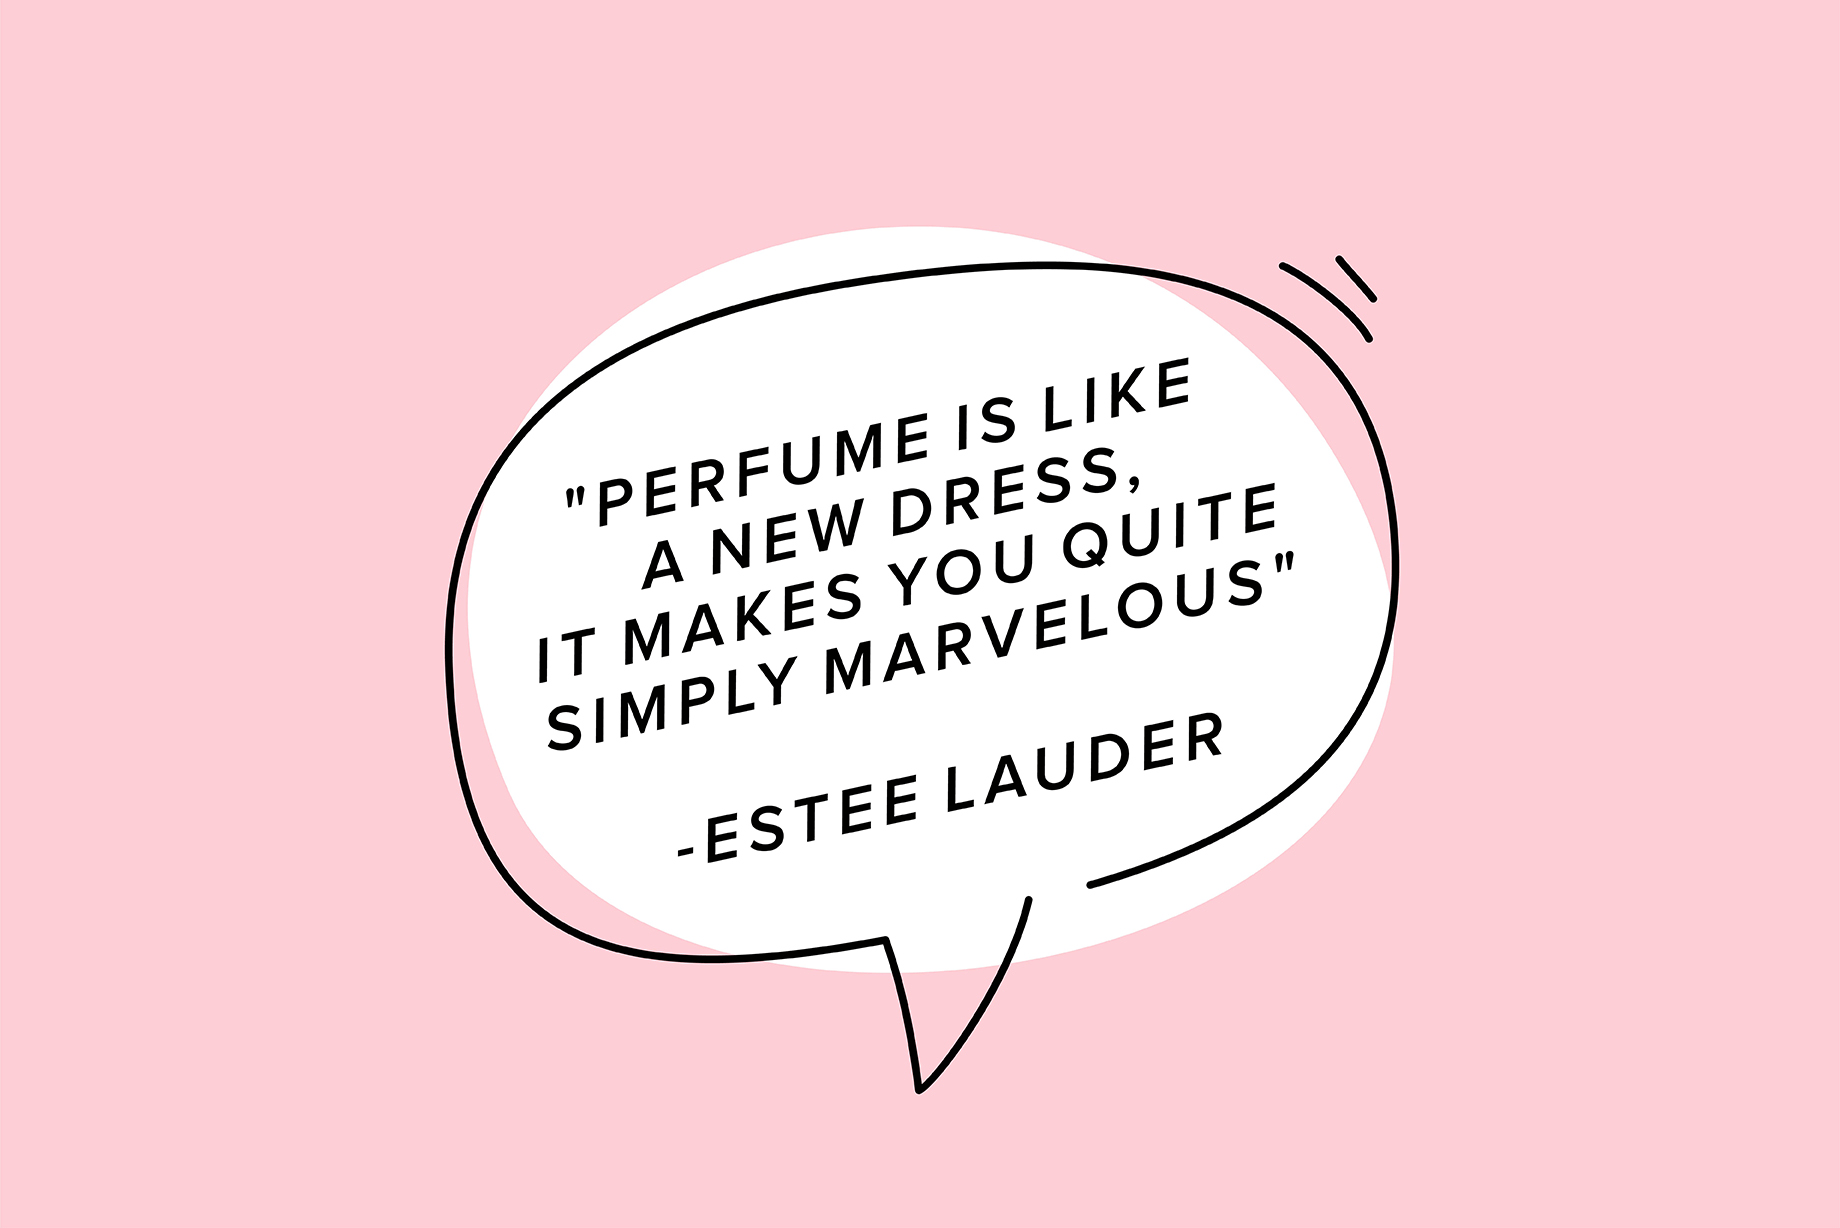 15 of The World's Best Quotes on Fragrance - Scentbird ...